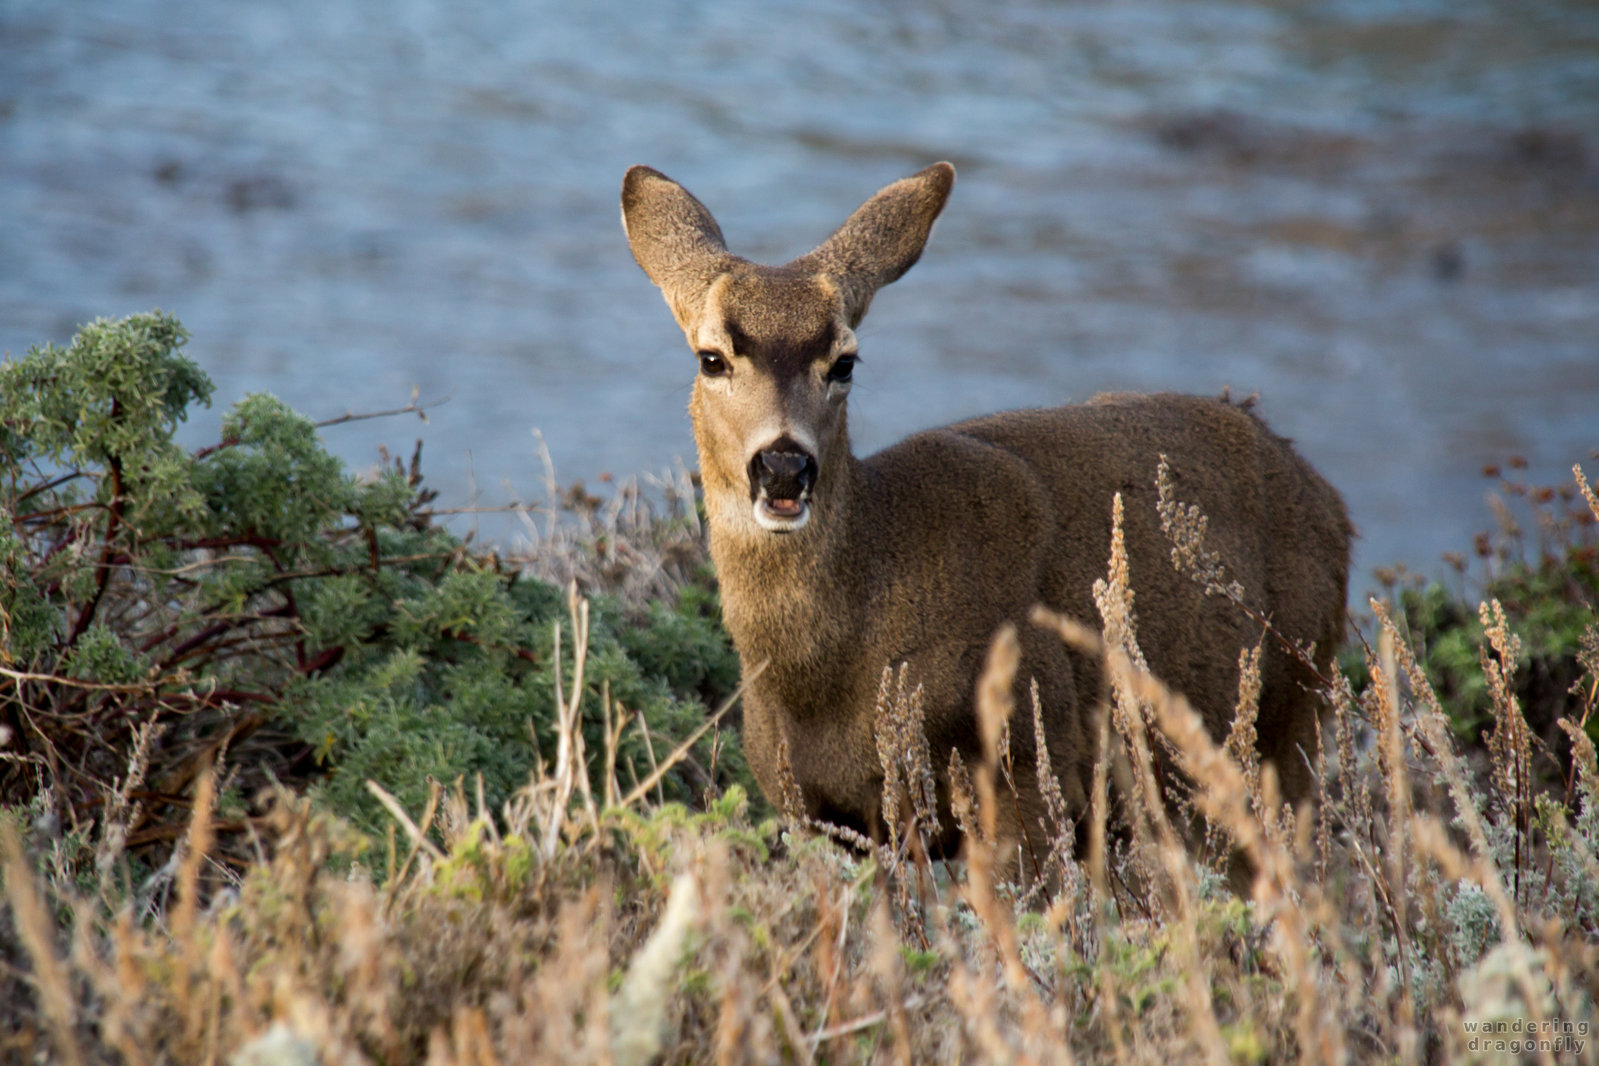 Munching -- animal, deer, grass, ocean, shore, water